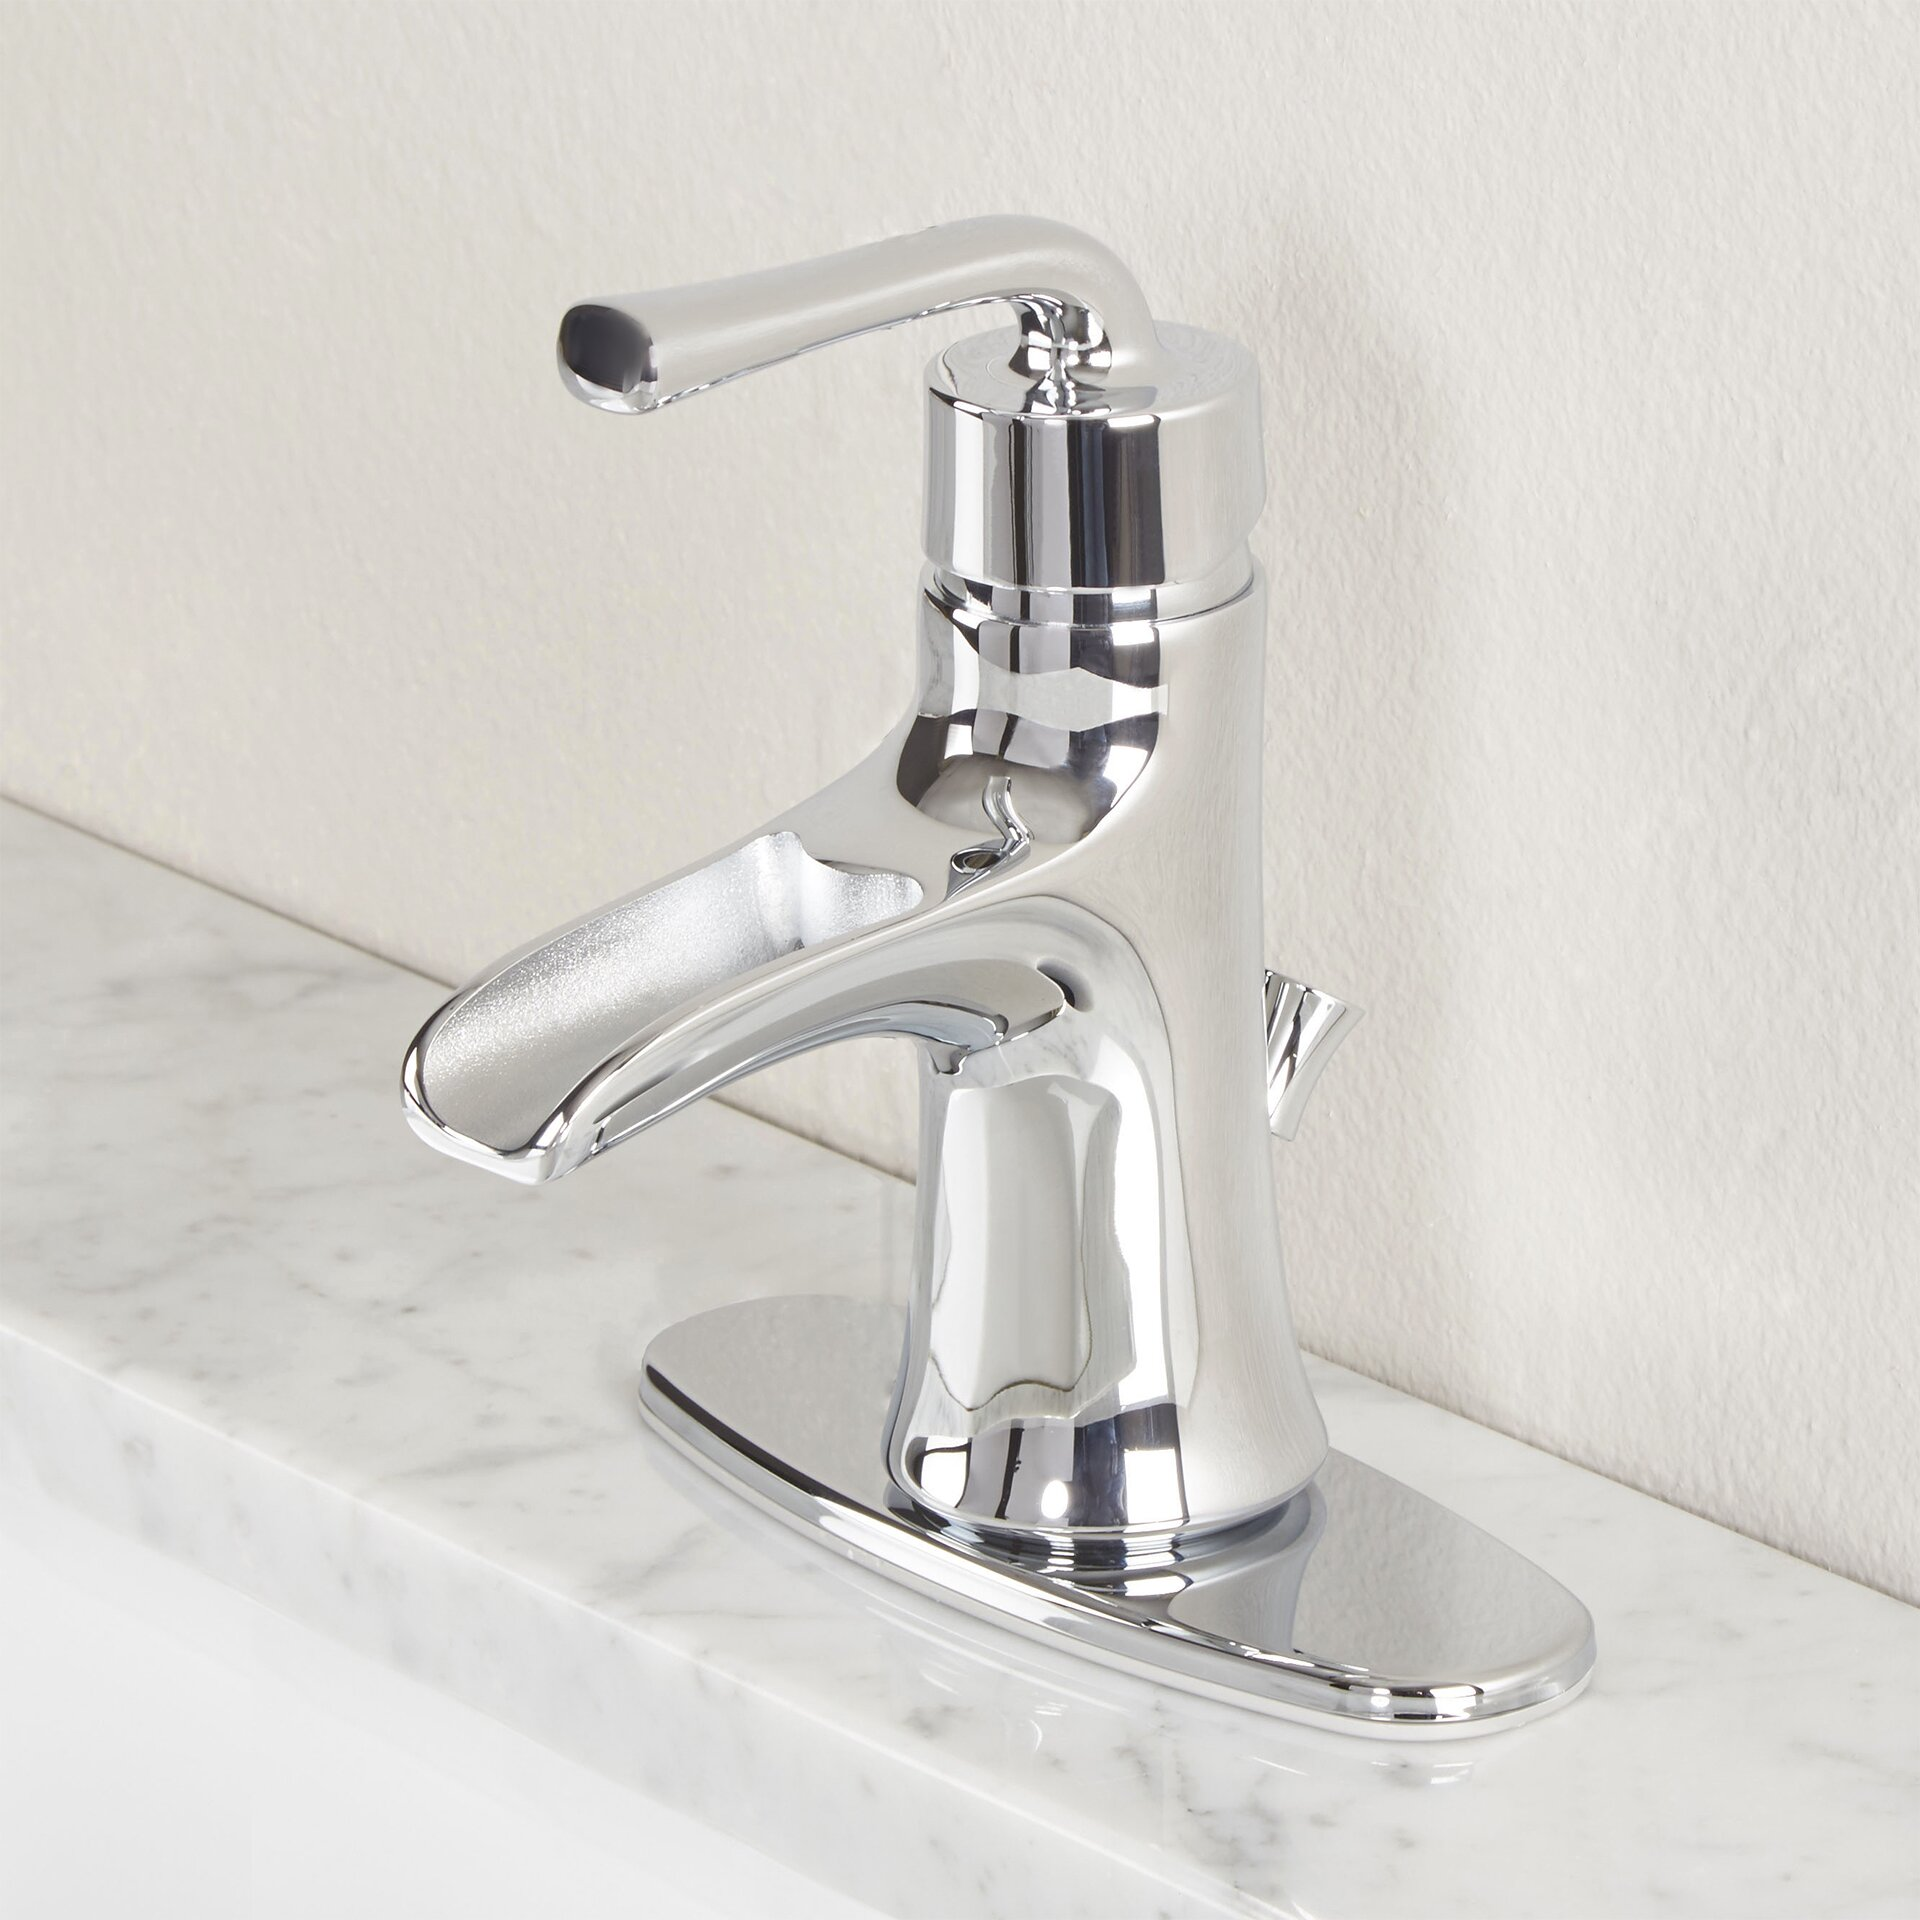 Bathroom Faucet Premier Faucet Sanibel Single Handle Bathroom Faucet Reviews